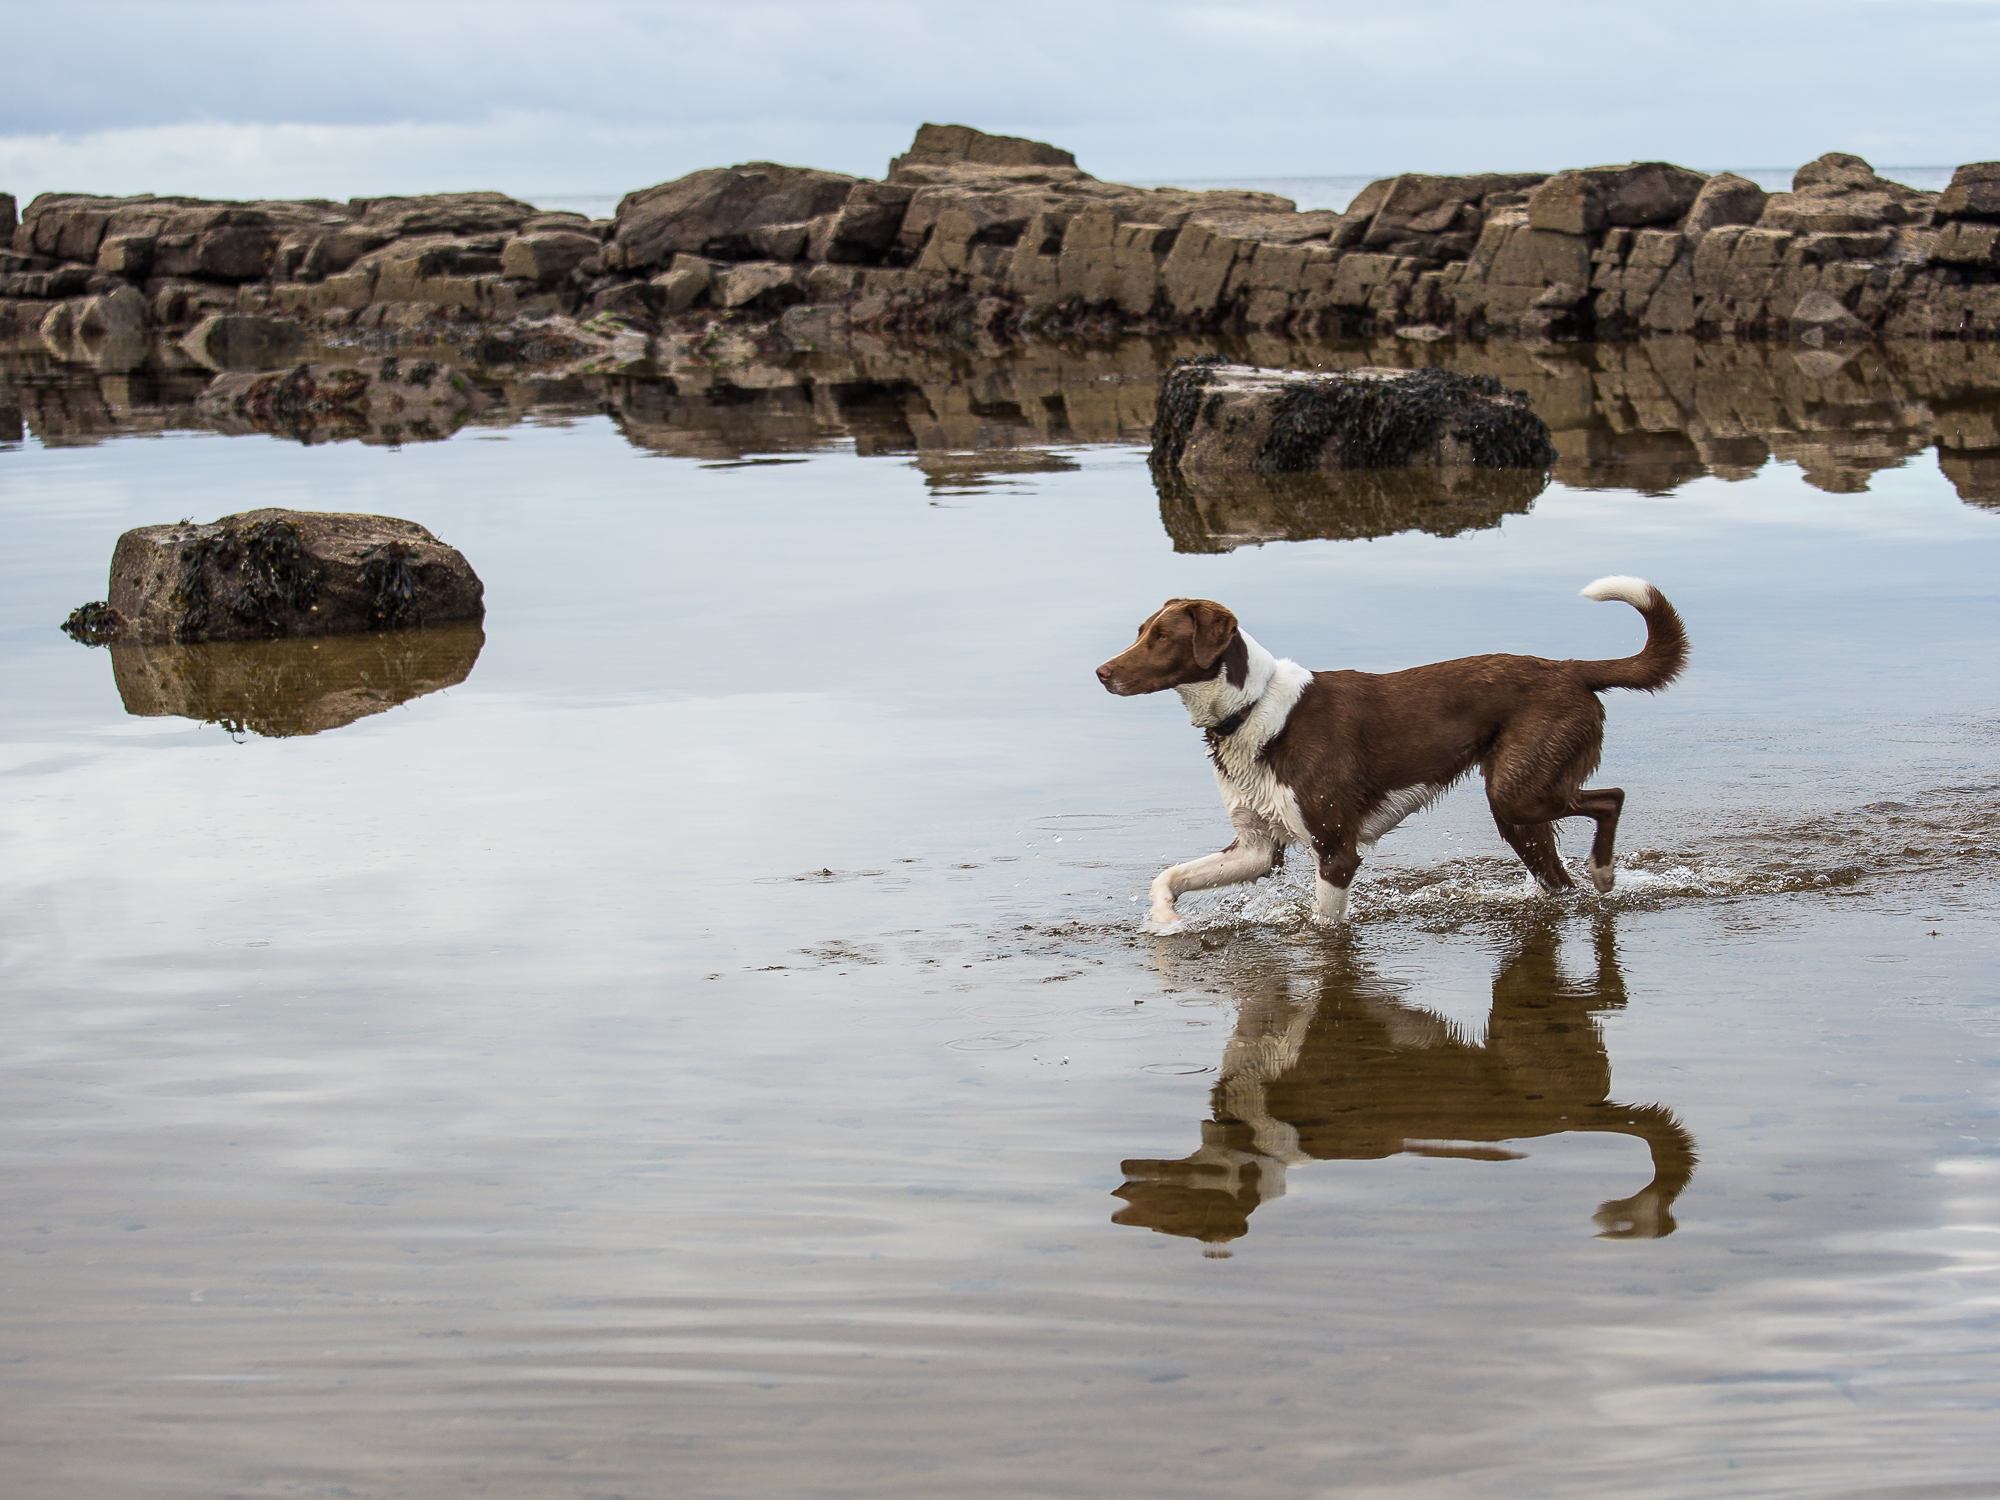 A hound enters the sea, its reflection caught in the moving waters